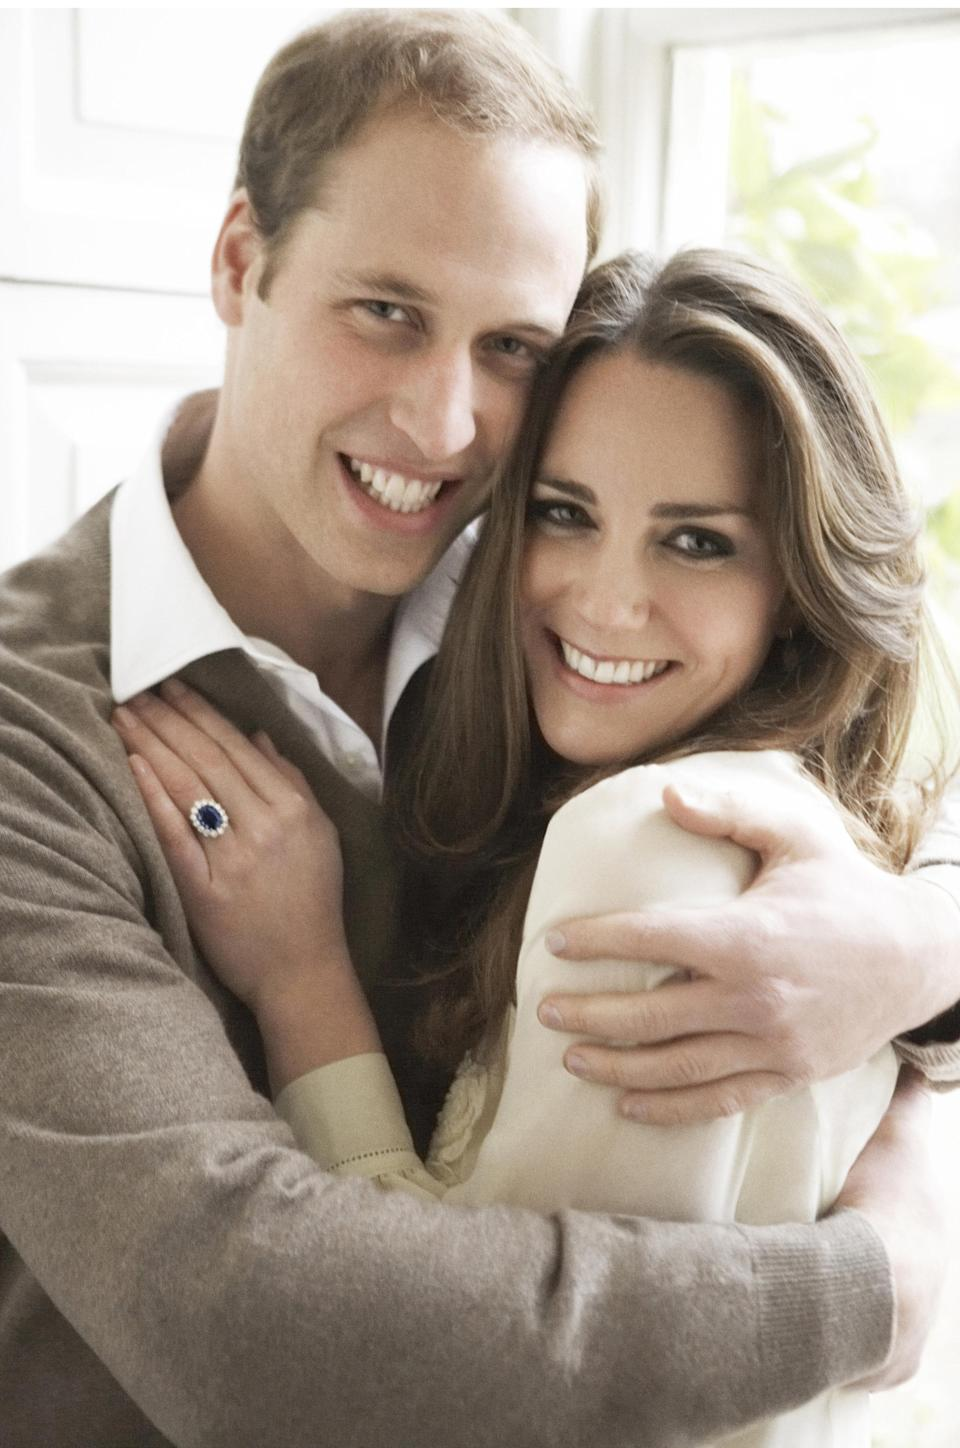 One of two official portrait photographs of Prince William and Kate taken to mark their engagement by Mario Testino in 2010. (PA/Mario Testino)